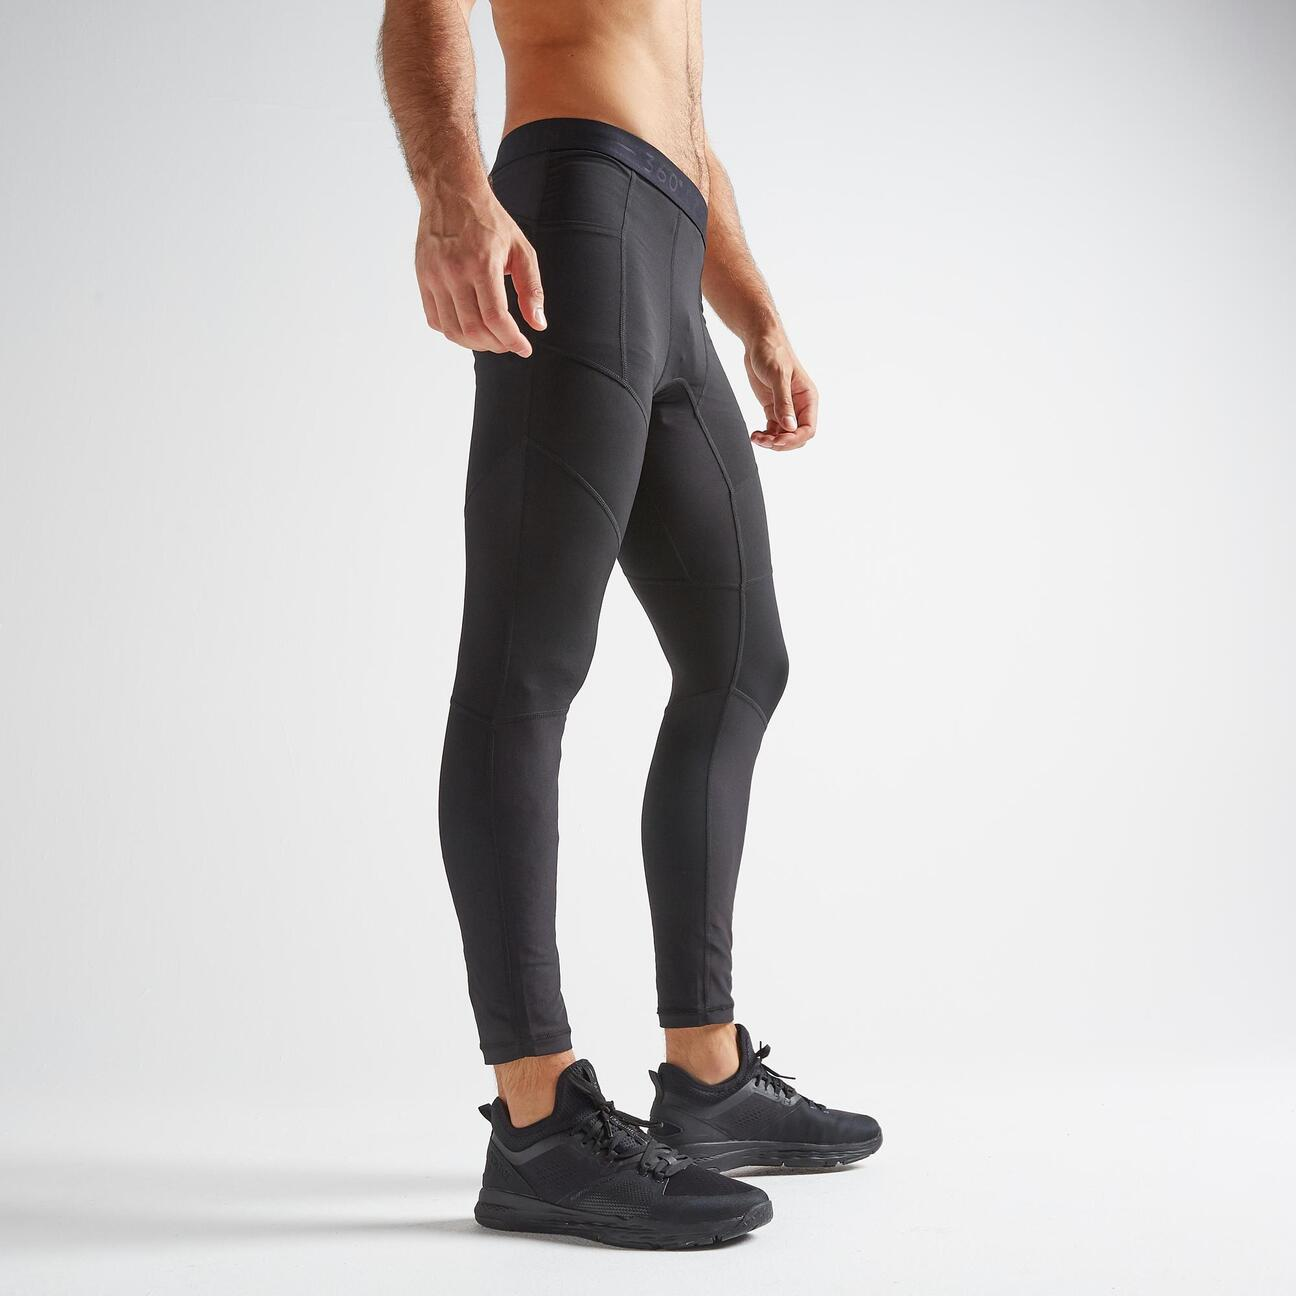 malla leggings fitness training hombre 500 negro